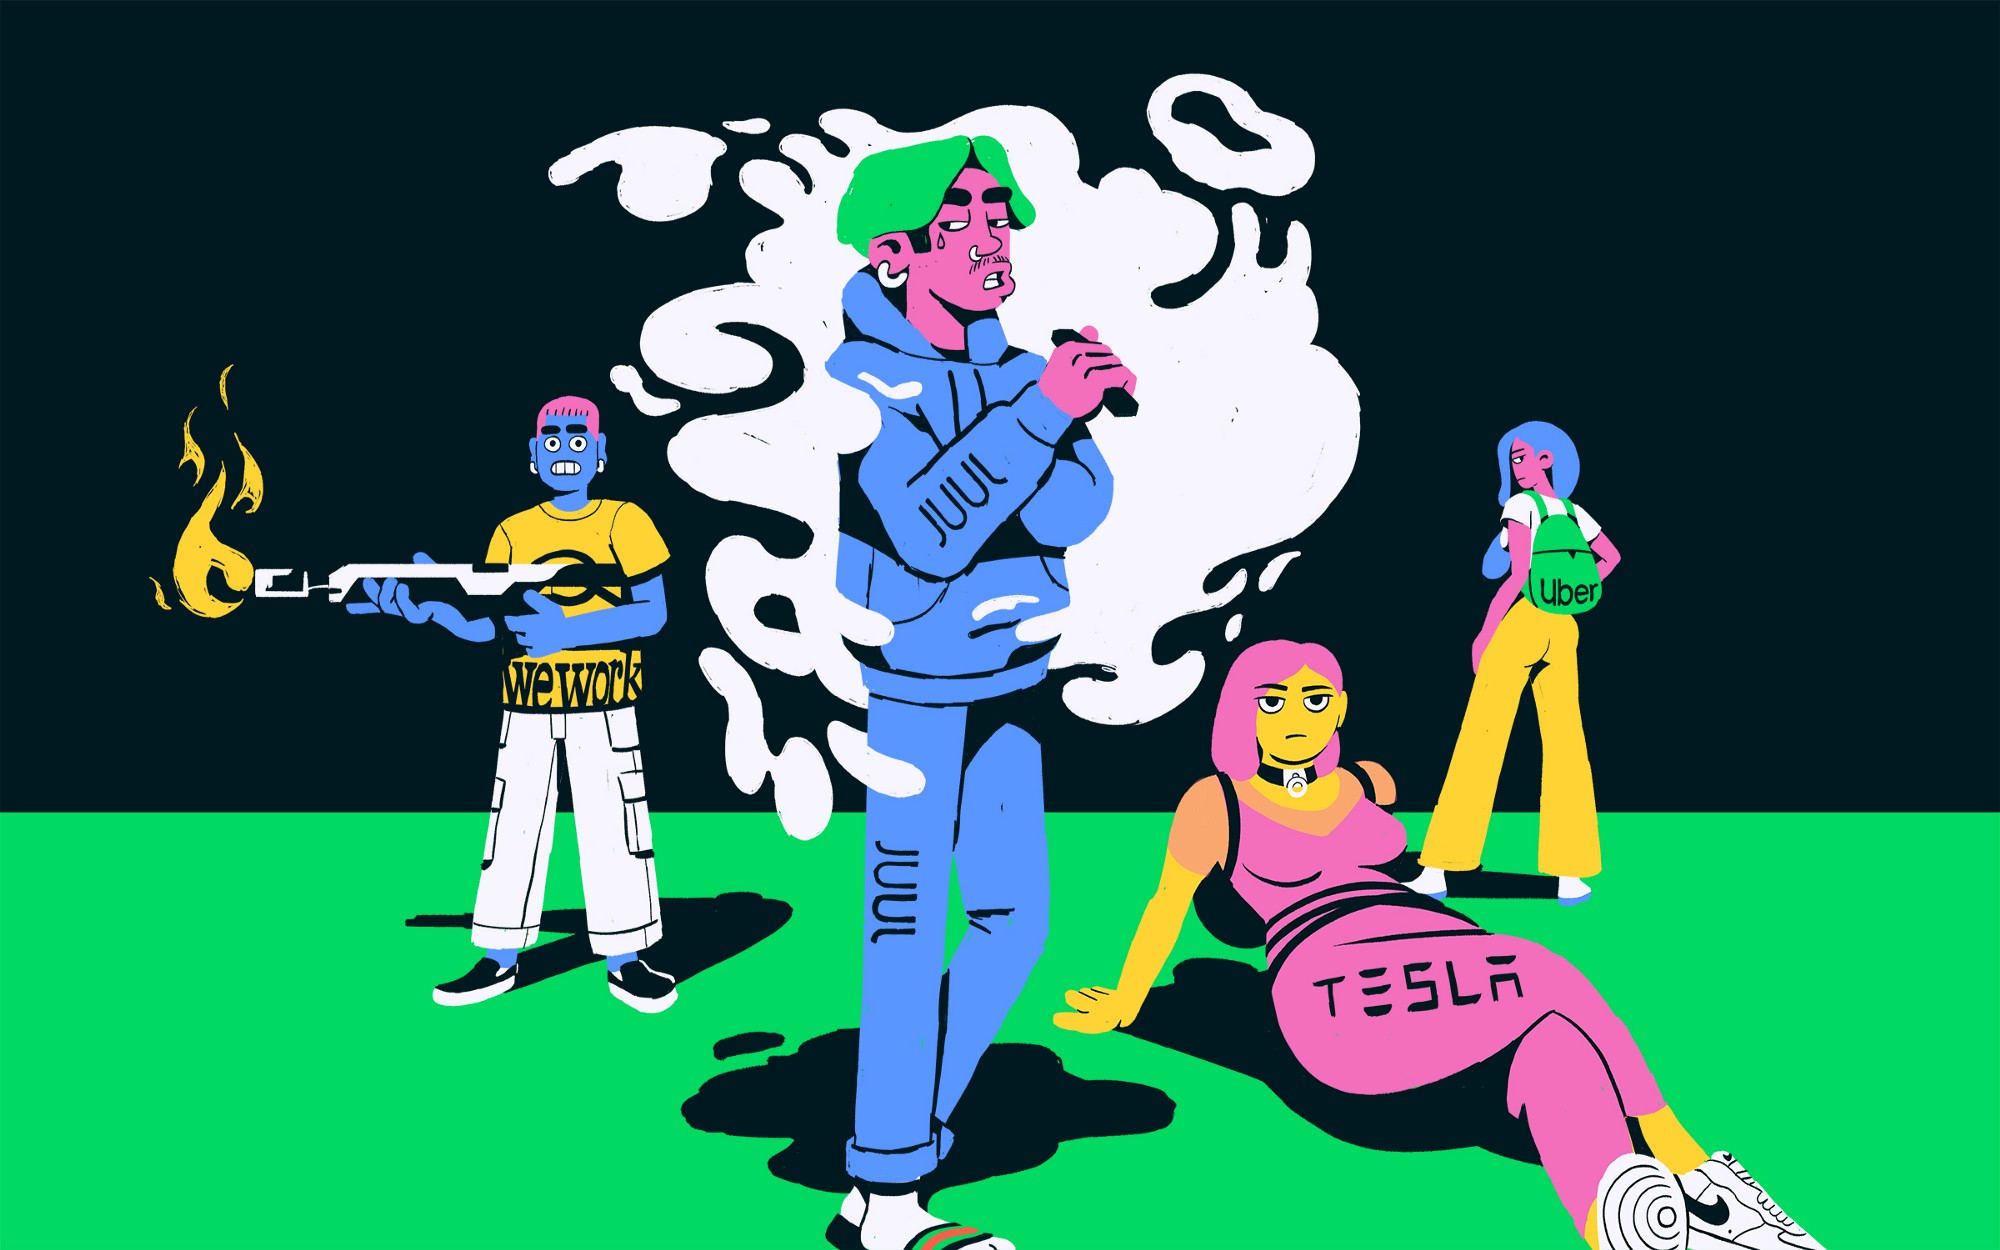 Four illustrated characters representing WeWork, Juul, Tesla, and Uber are in various poses, with smirks on their faces.